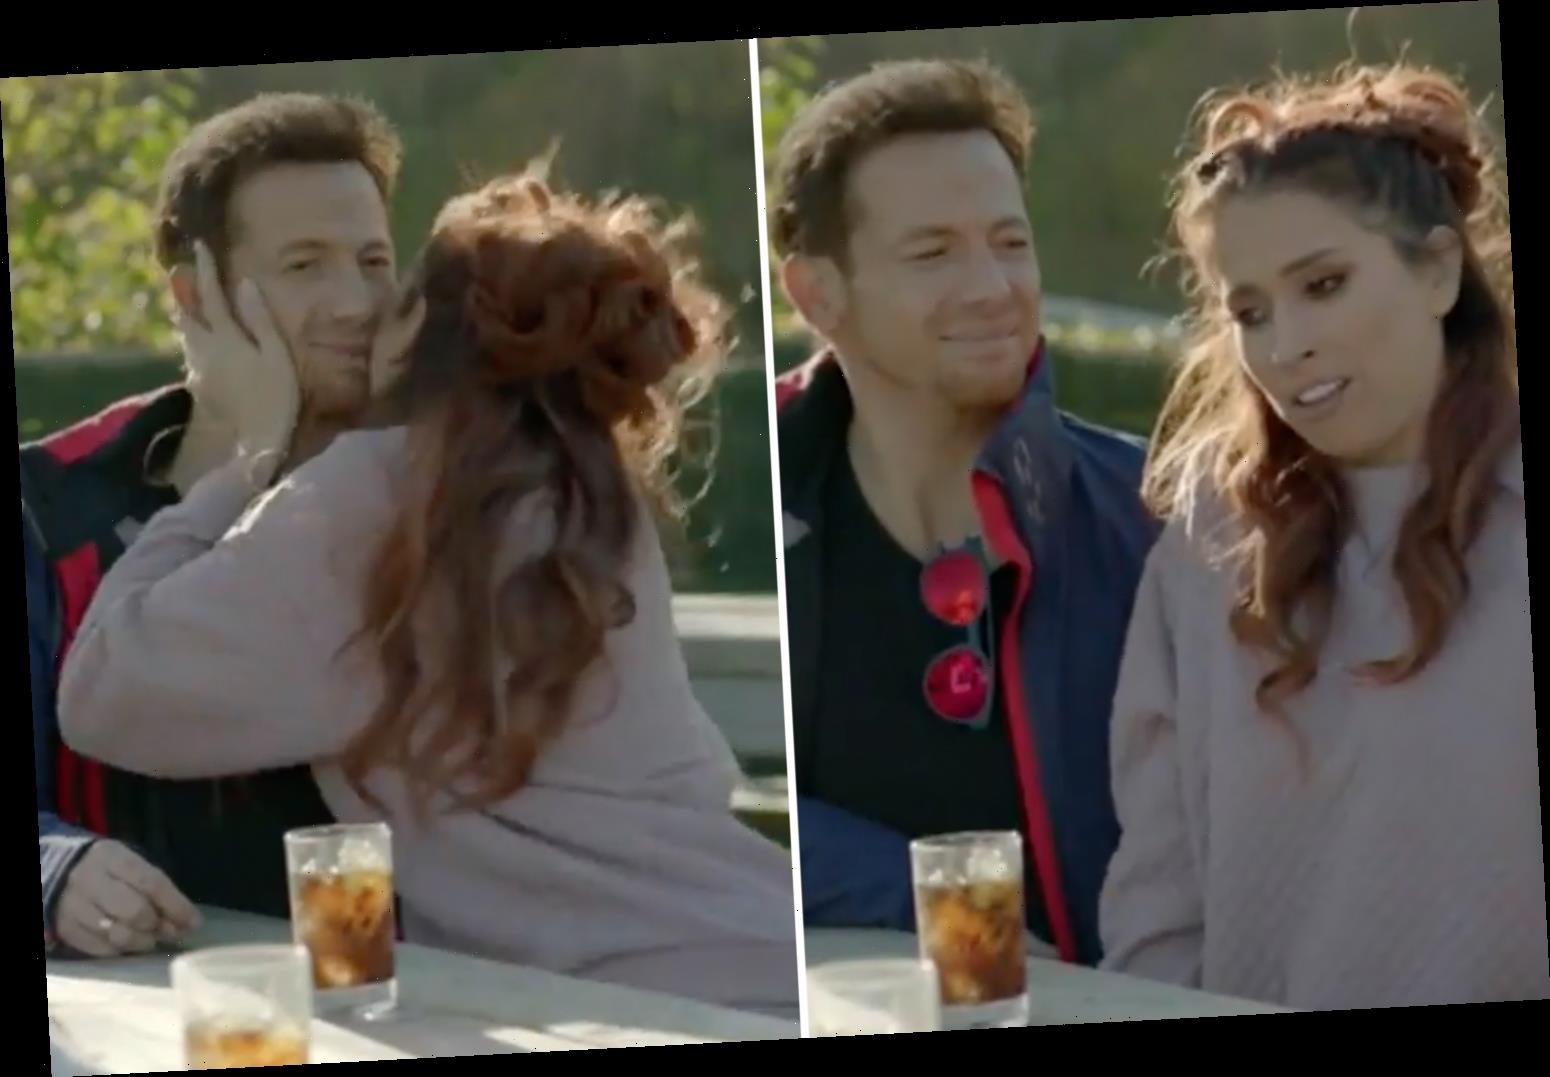 Joe Swash says his first snog with Stacey Solomon was like 'kissing a dead person'